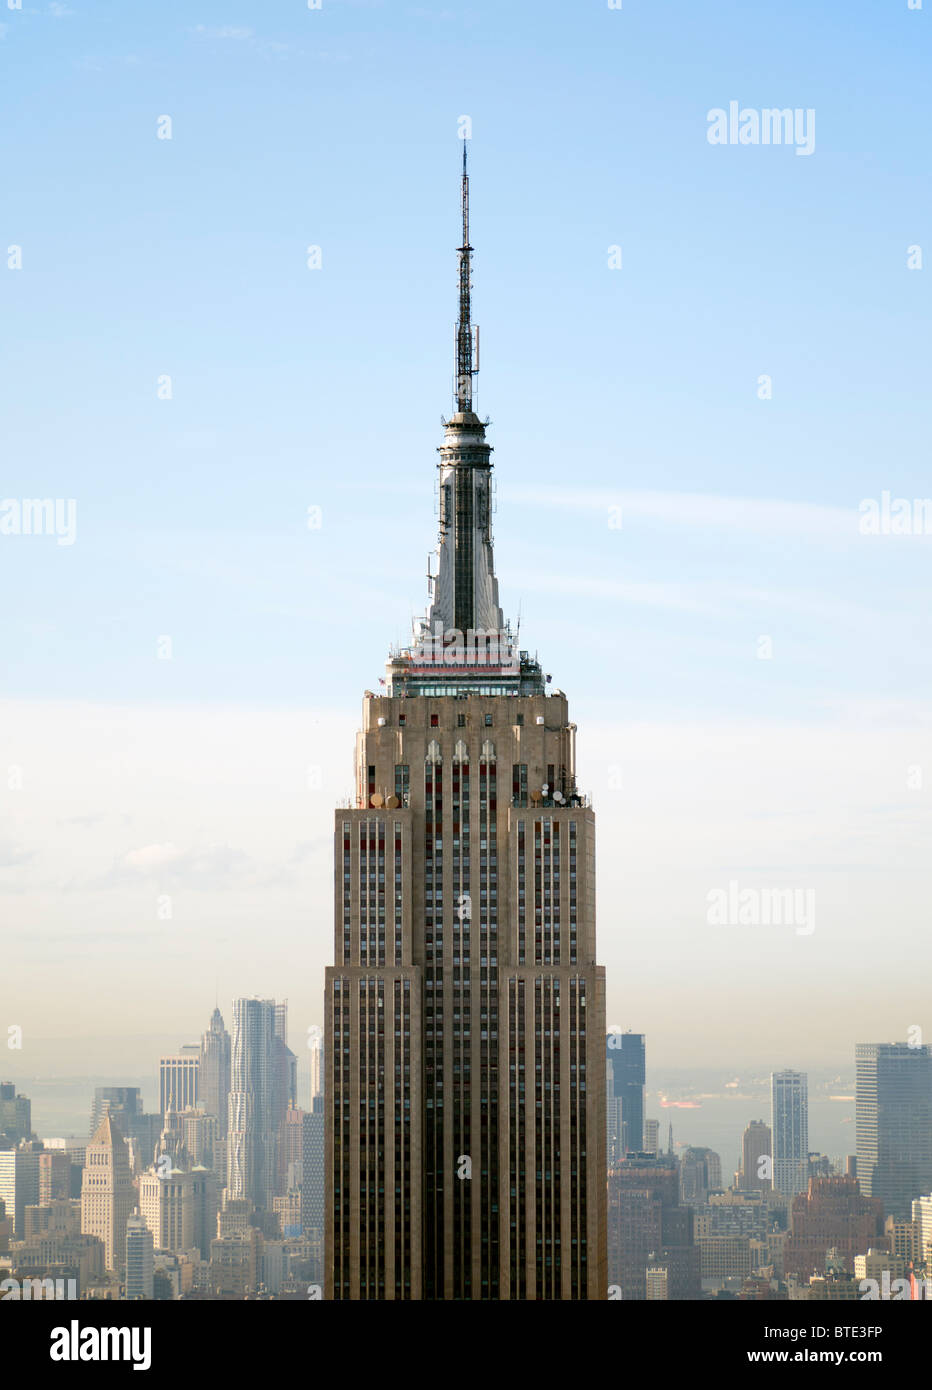 View of the Empire State Building in Manhattan New York City USA Stock Photo